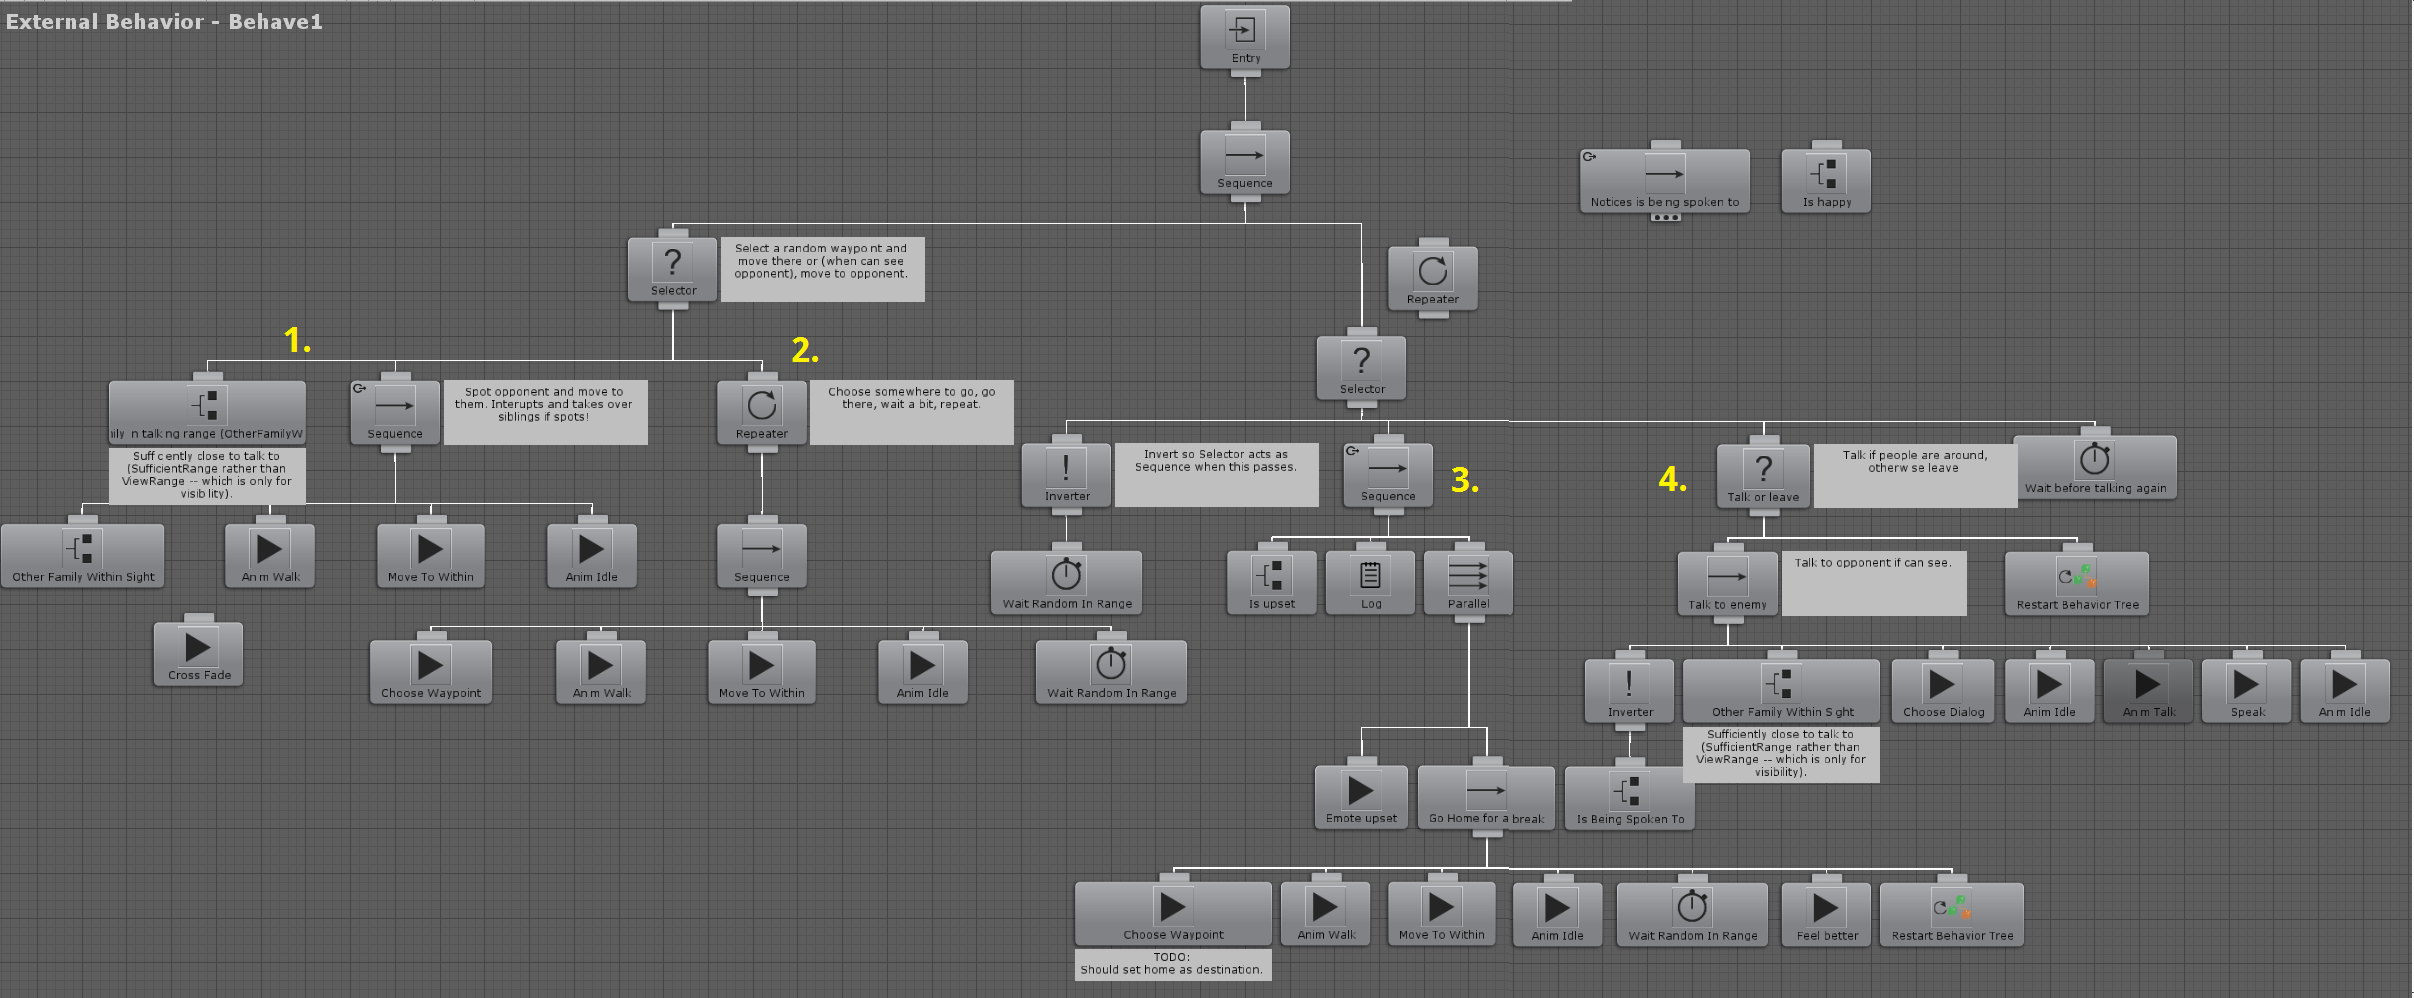 Behaviour Tree used in-game